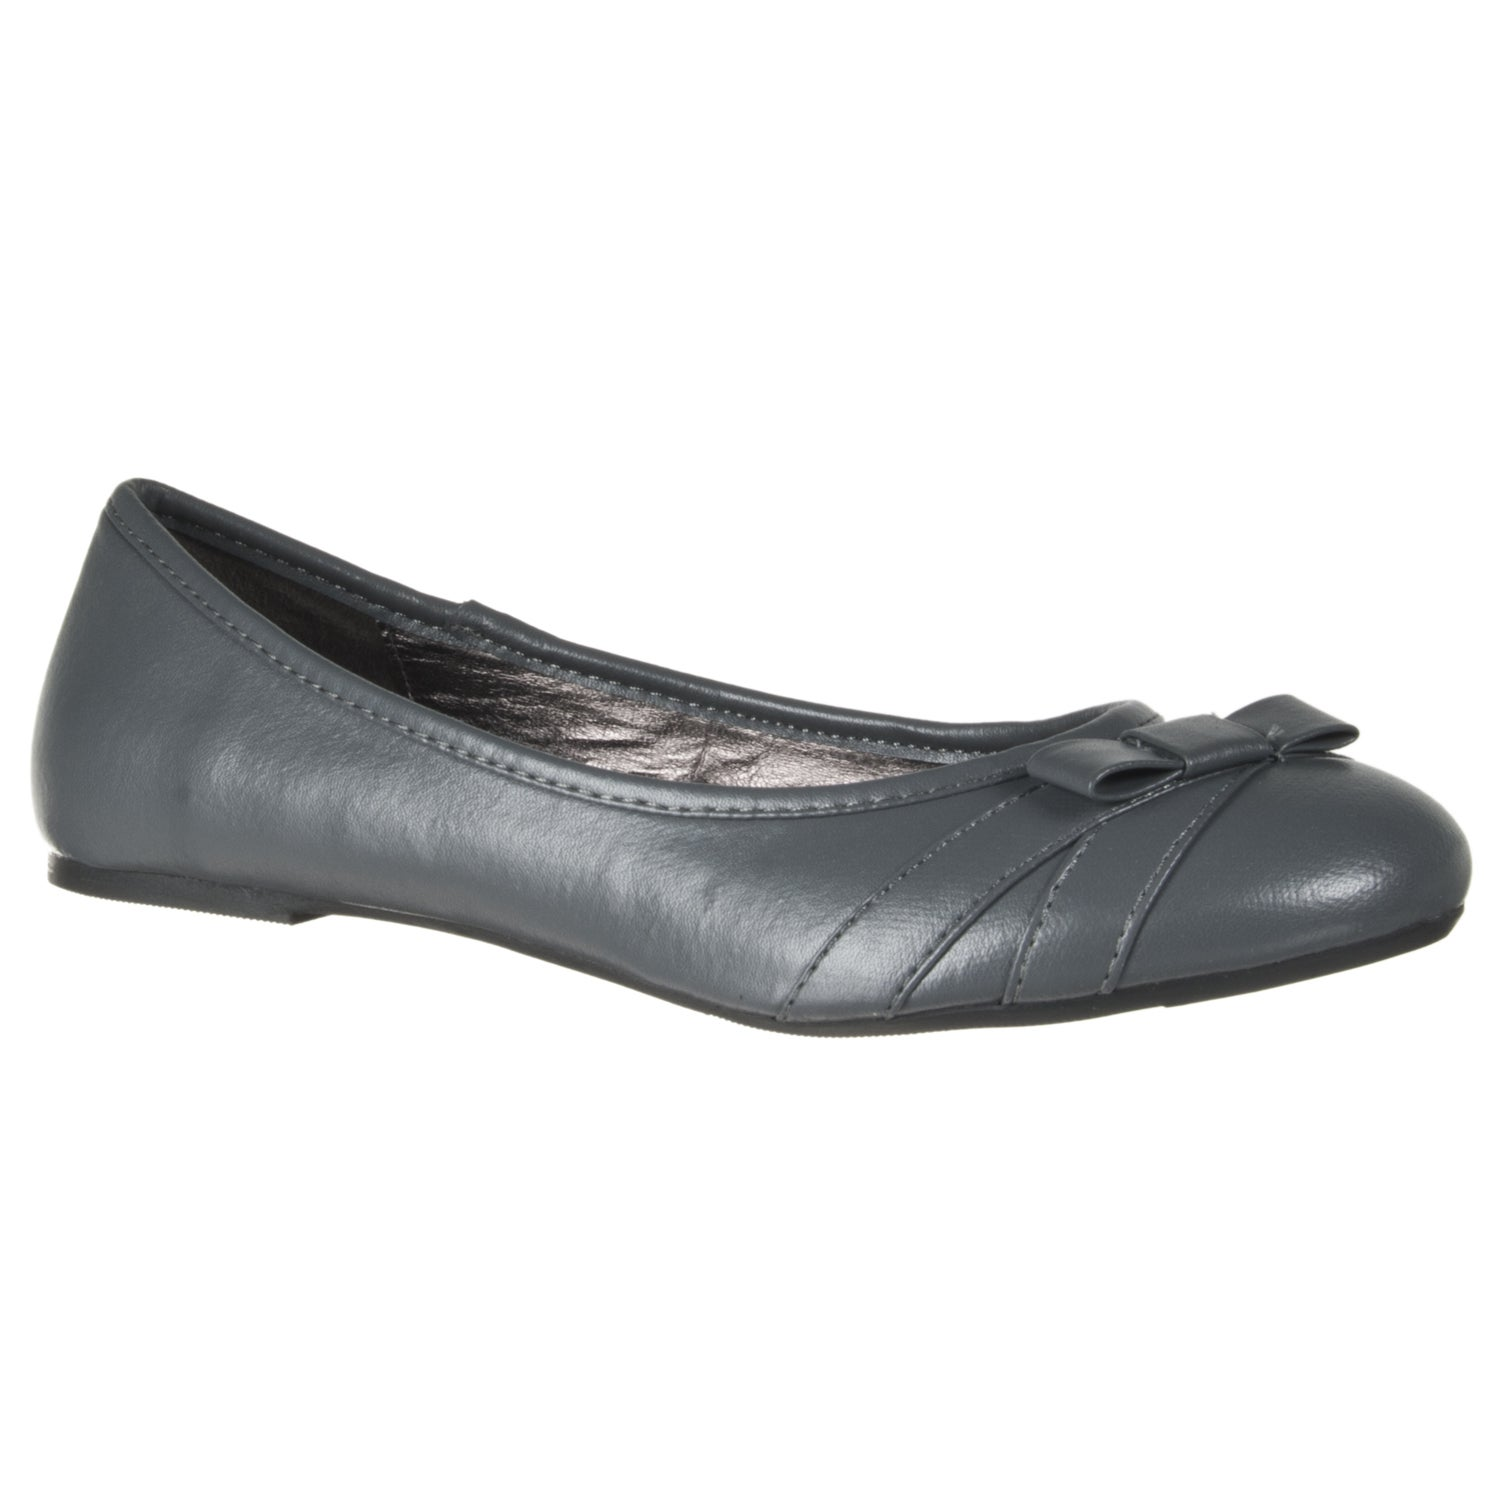 Riverberry Women's Grey Faux Leather Bowed Flats